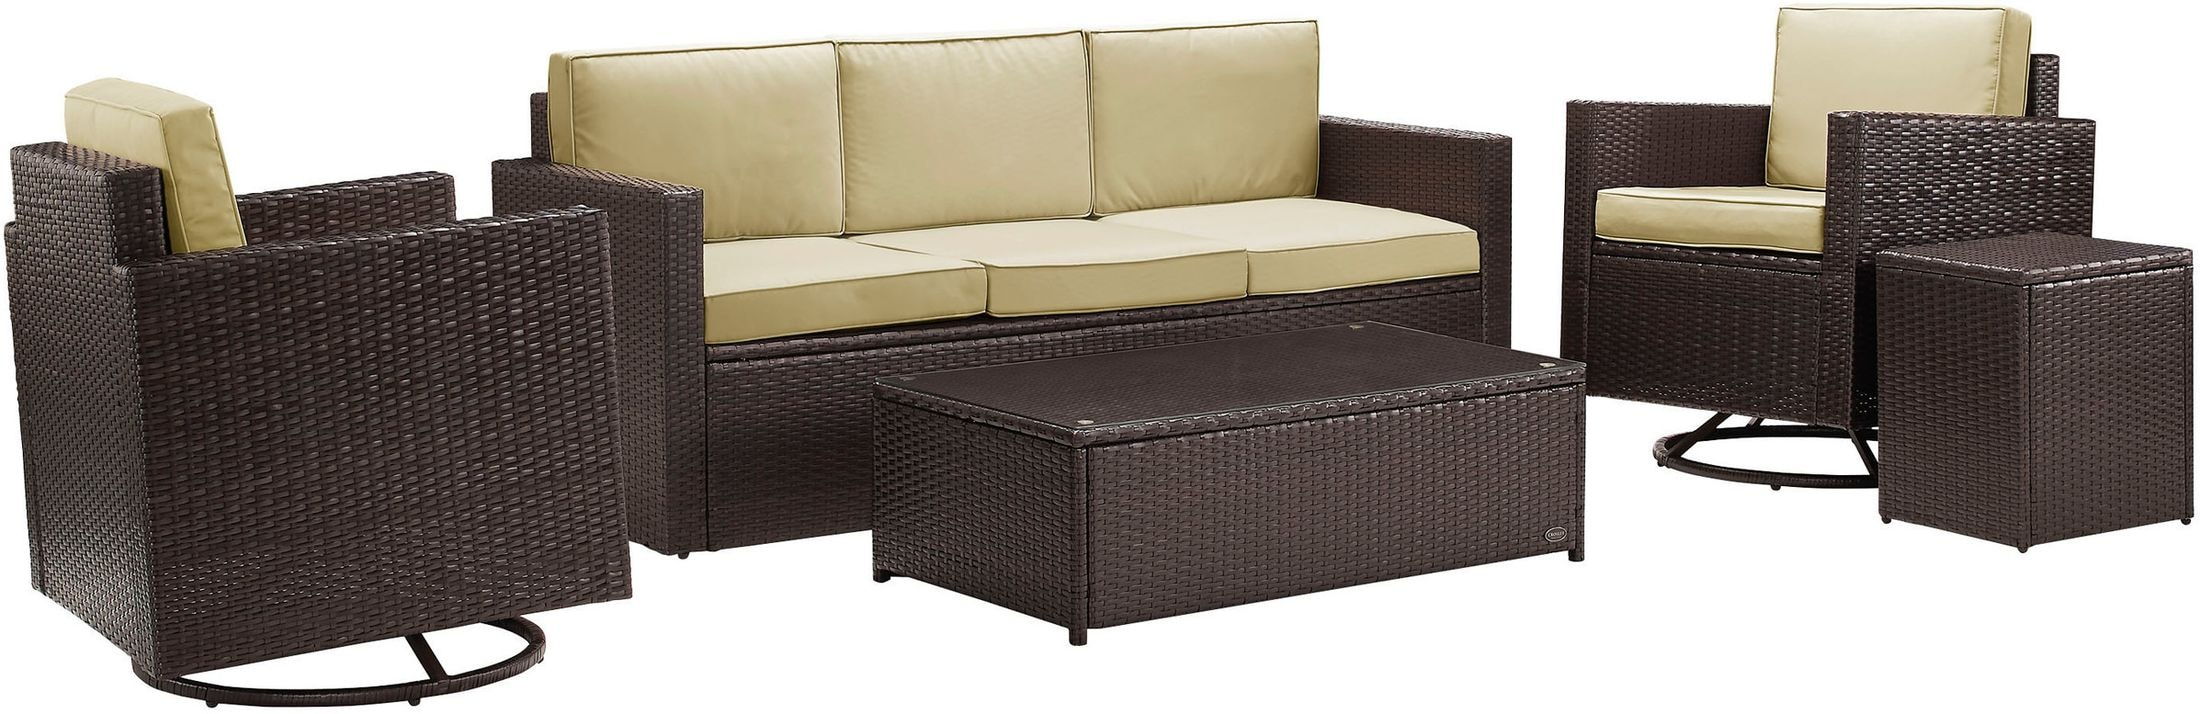 Outdoor Furniture - Aldo Outdoor Sofa, Set of 2 Swivel Chairs, Coffee Table and End Table